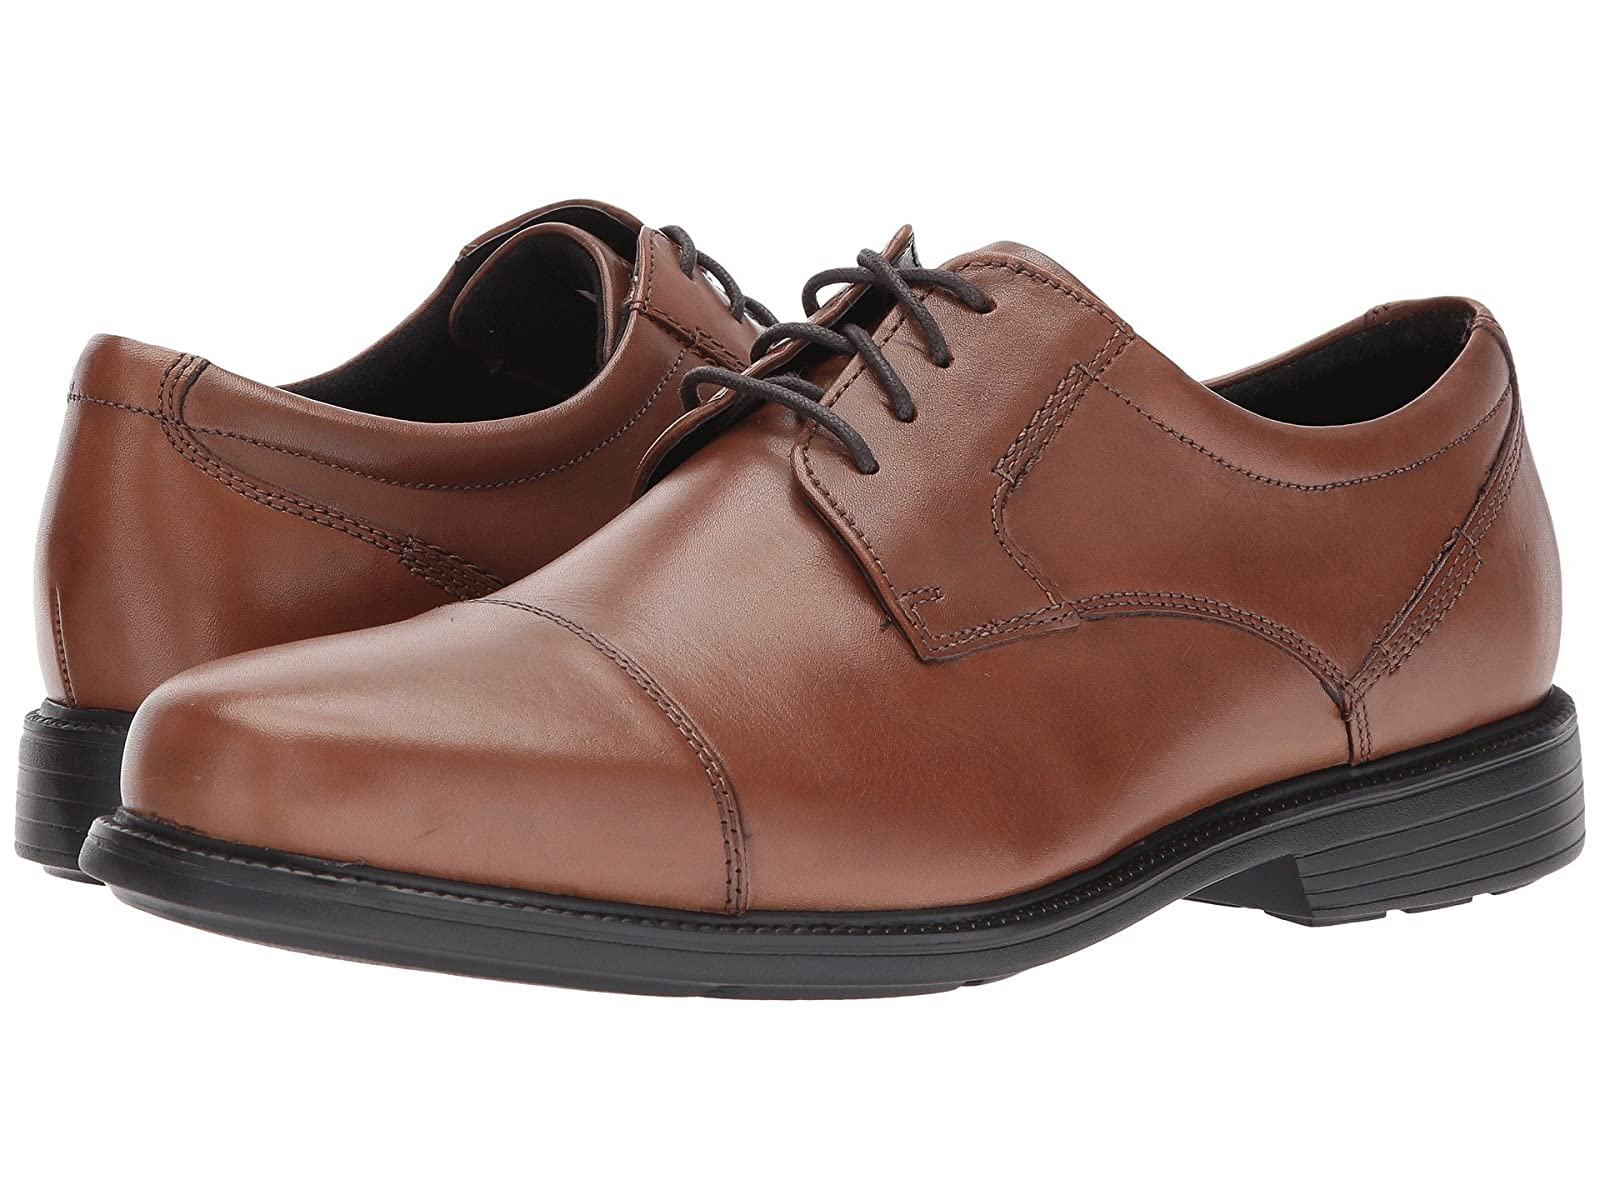 Rockport Charles Road Cap Toe OxfordCheap and distinctive eye-catching shoes